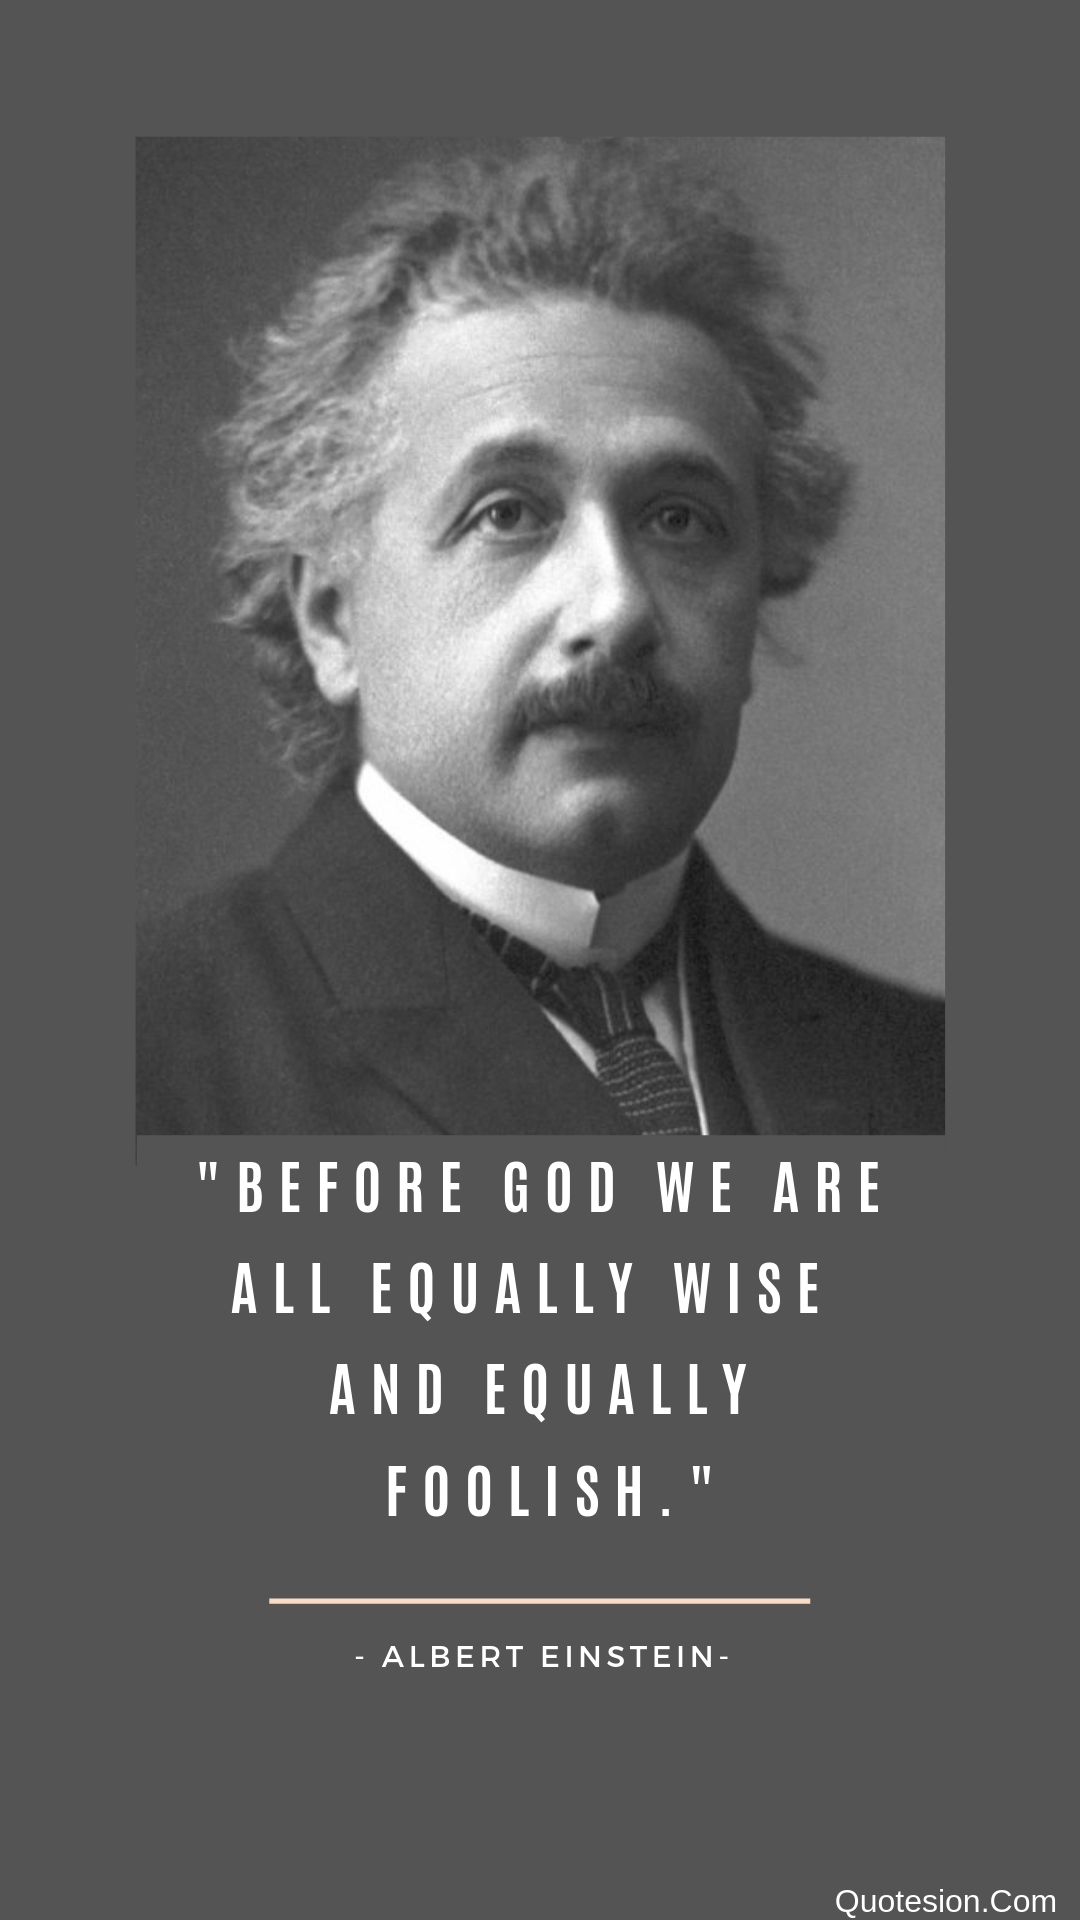 """BEFORE GOD WE ARE ALL EQUALLY WISE AND EQUALLY FOOLISH."" -Albert Einstein- [1920×1080]"